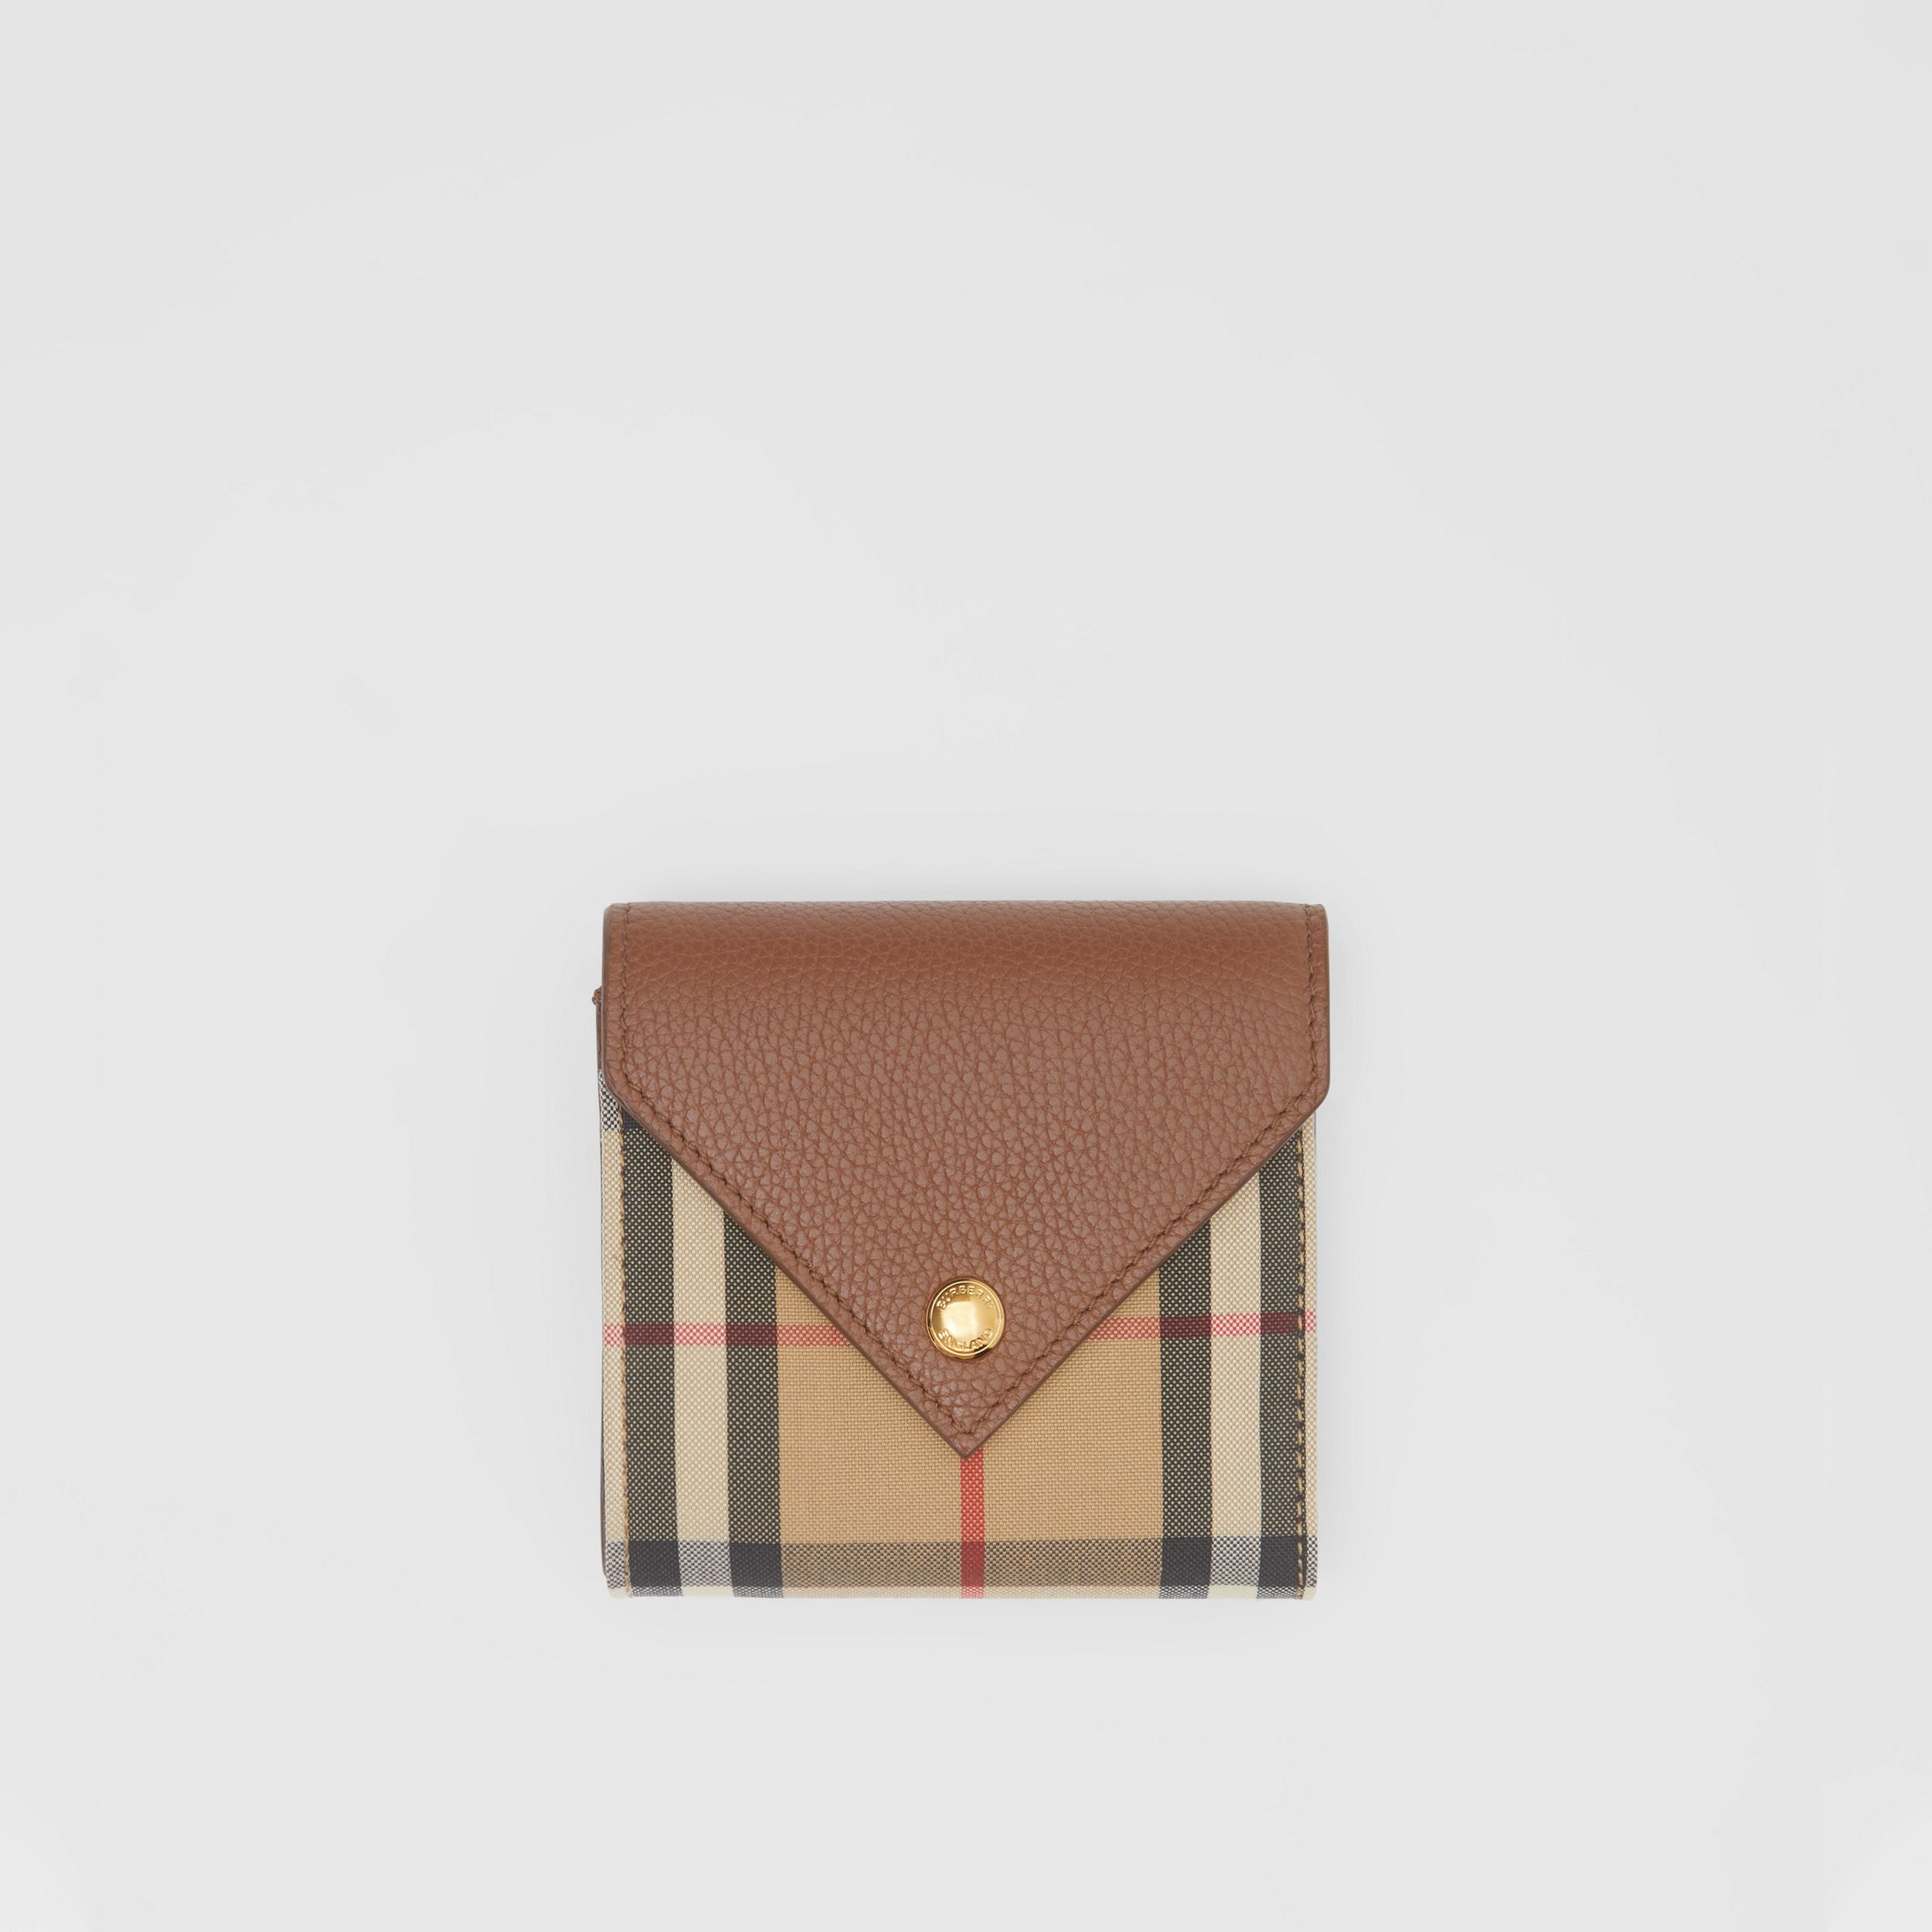 Vintage Check and Grainy Leather Folding Wallet in Tan - Women | Burberry Hong Kong S.A.R. - 1